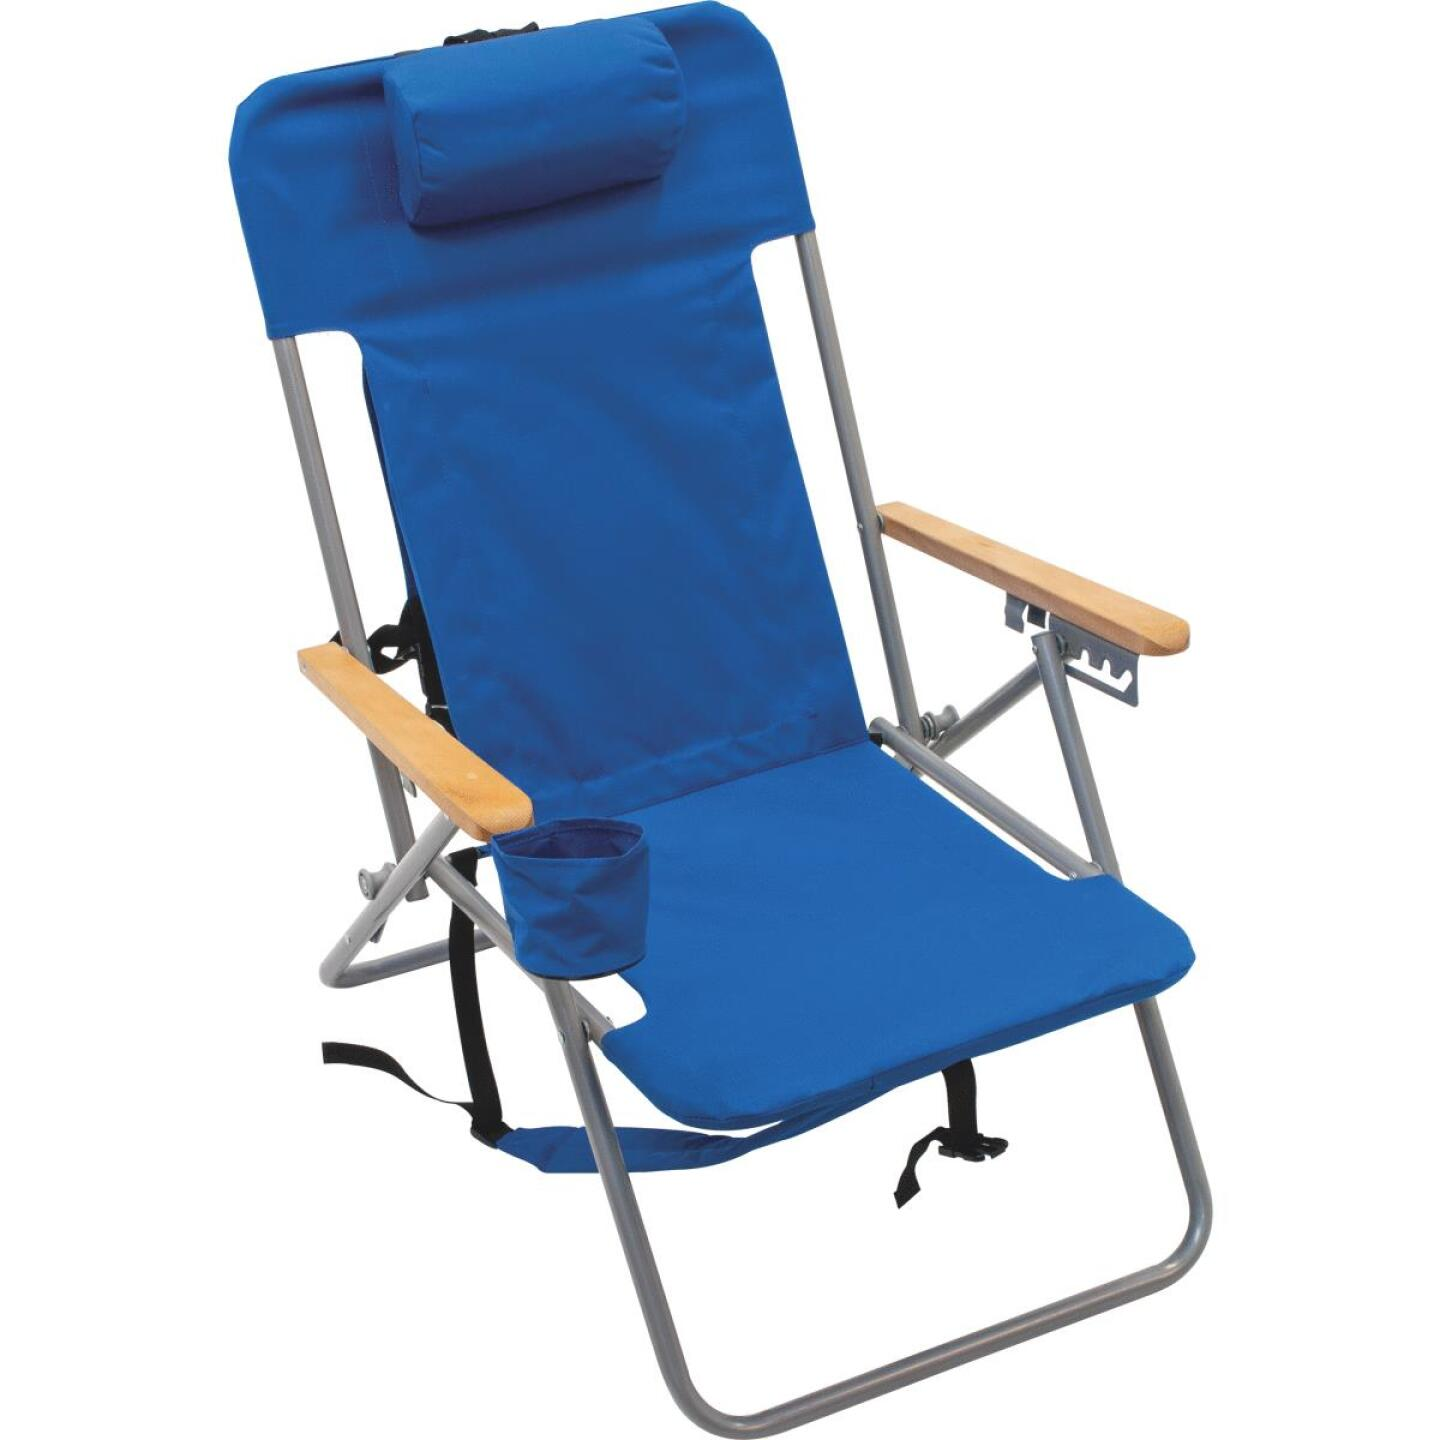 Rio Brands Blue Canvas Backpack Folding Chair Image 1